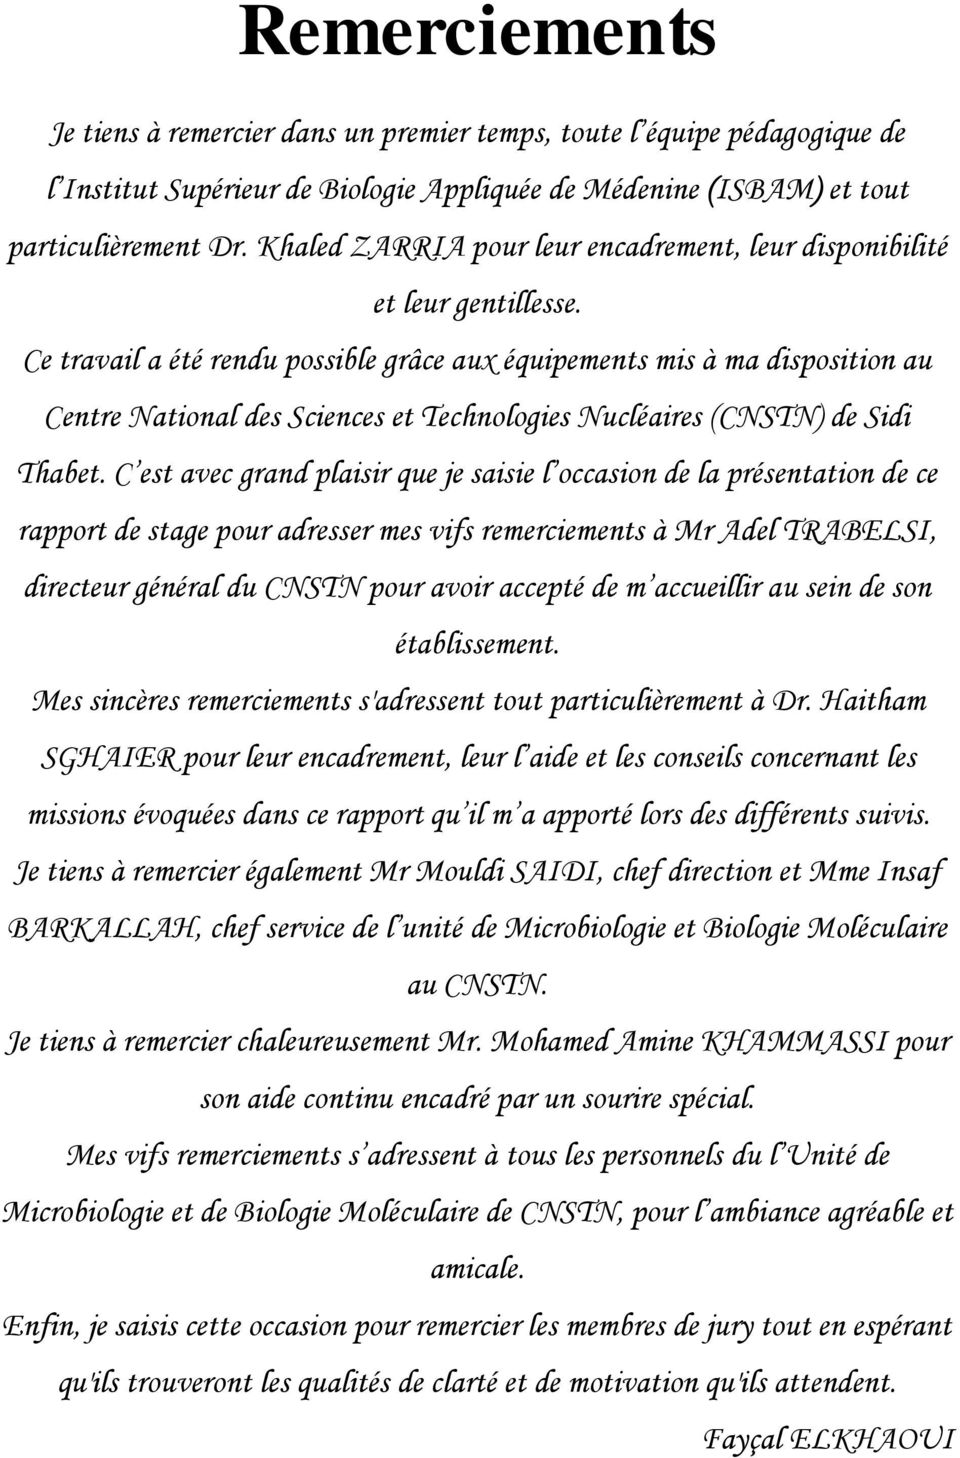 Ce travail a été rendu possible grâce aux équipements mis à ma disposition au Centre National des Sciences et Technologies Nucléaires (CNSTN) de Sidi Thabet.